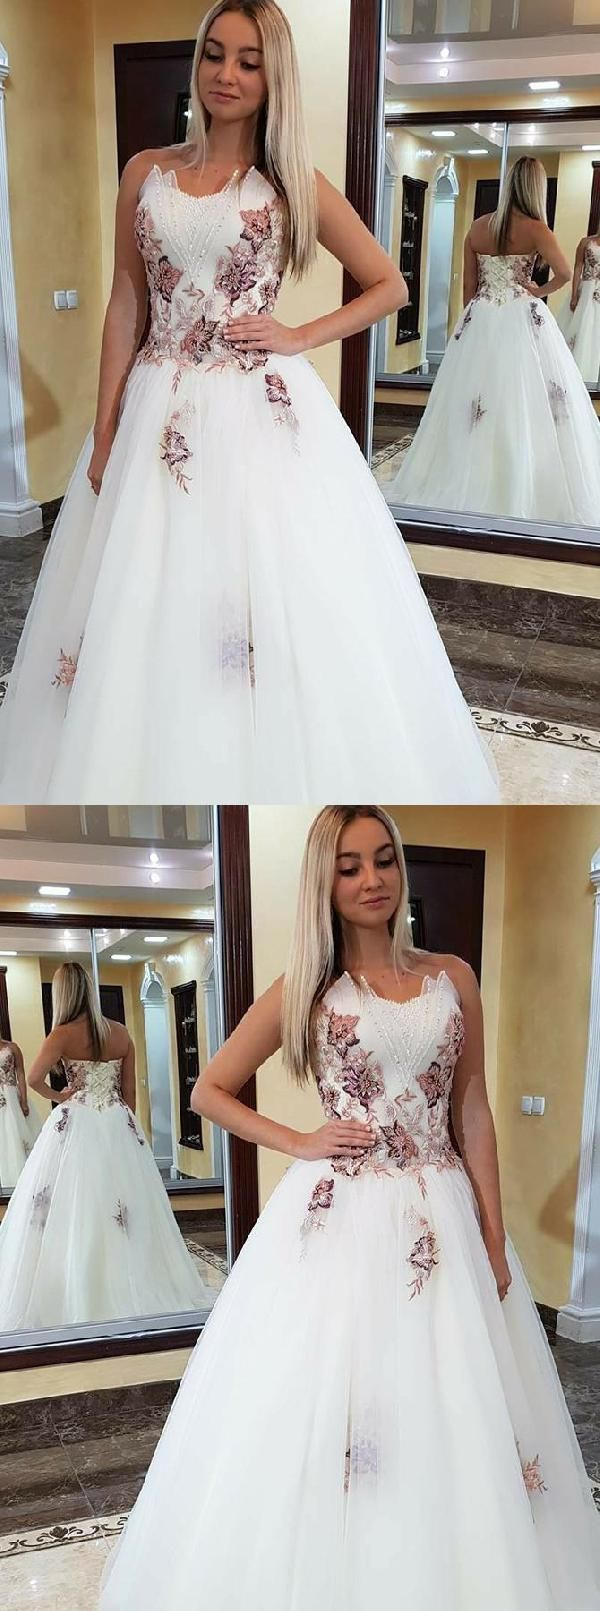 Outlet engrossing white prom dresses prom dresses prom